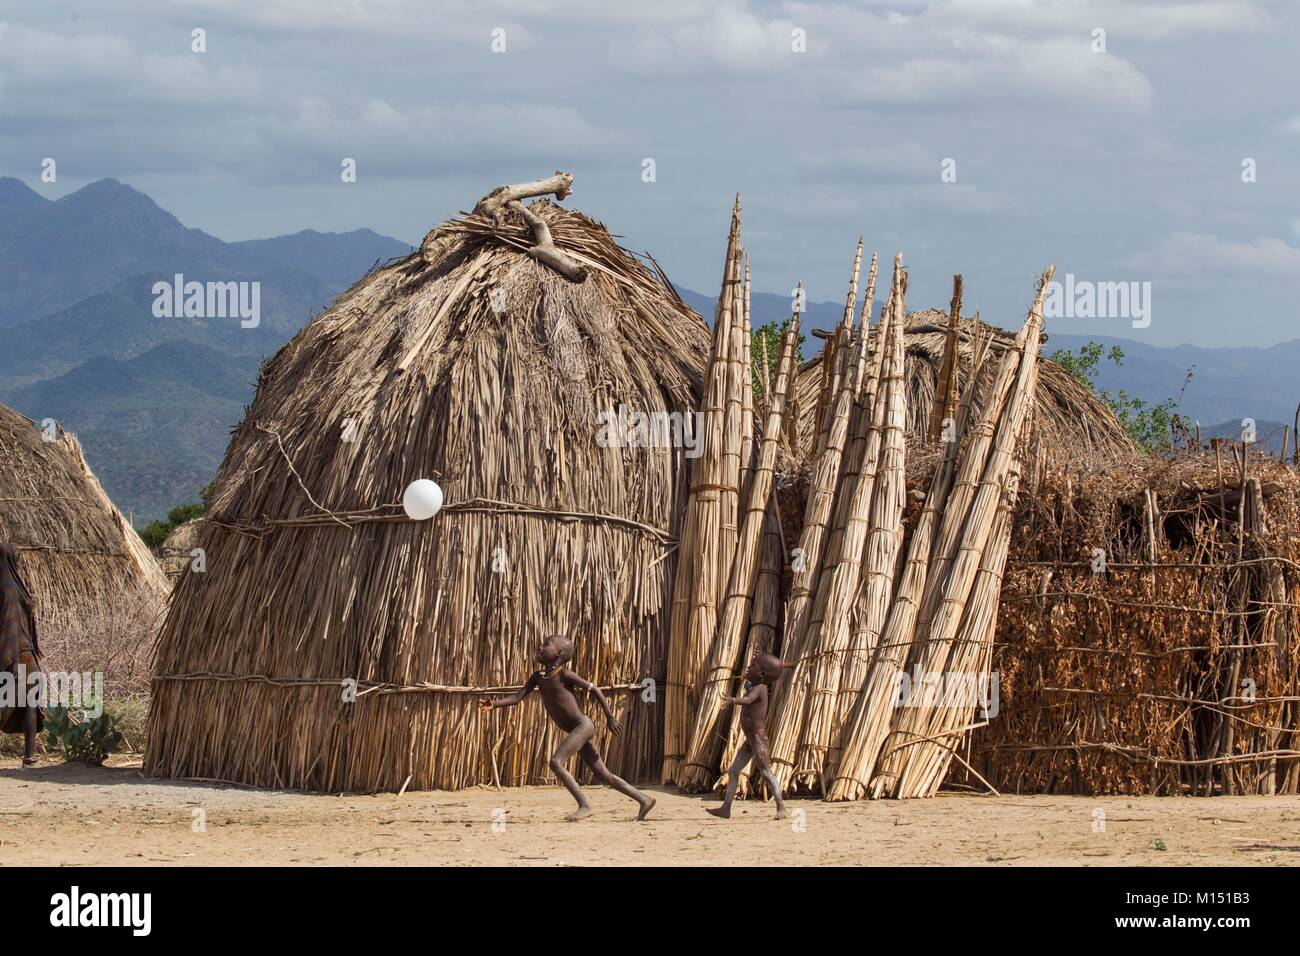 Ethiopia, Lower Omo Valley listed as World Heritage by UNESCO, Erbore tribe, children playing football - Stock Image